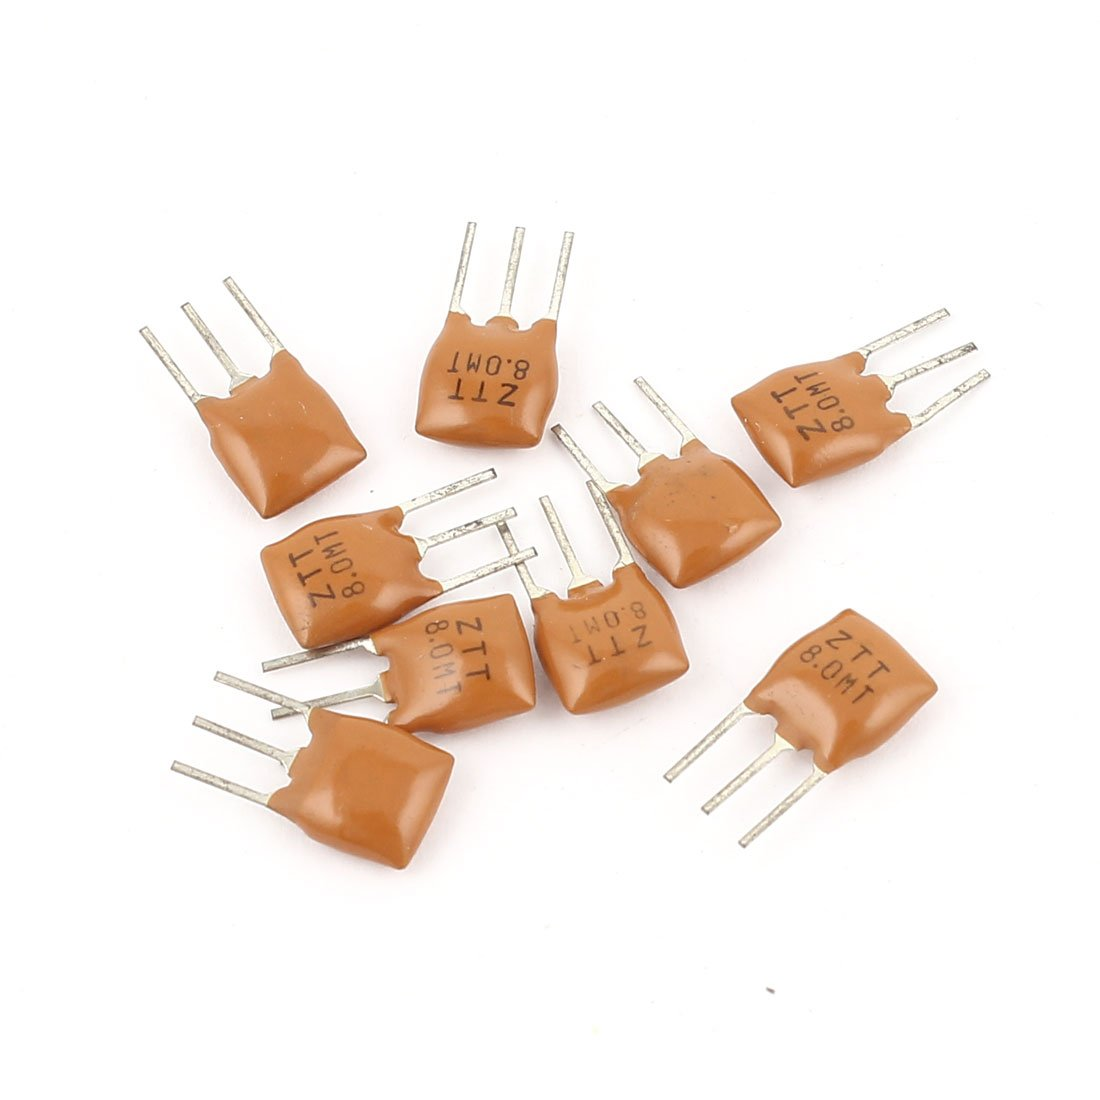 Aexit 10 Pcs Passive Components Radial Lead 3 Poles Ceramic Filter Crystal Resonator ZTT8.0M Crystals 8MHz Frequency